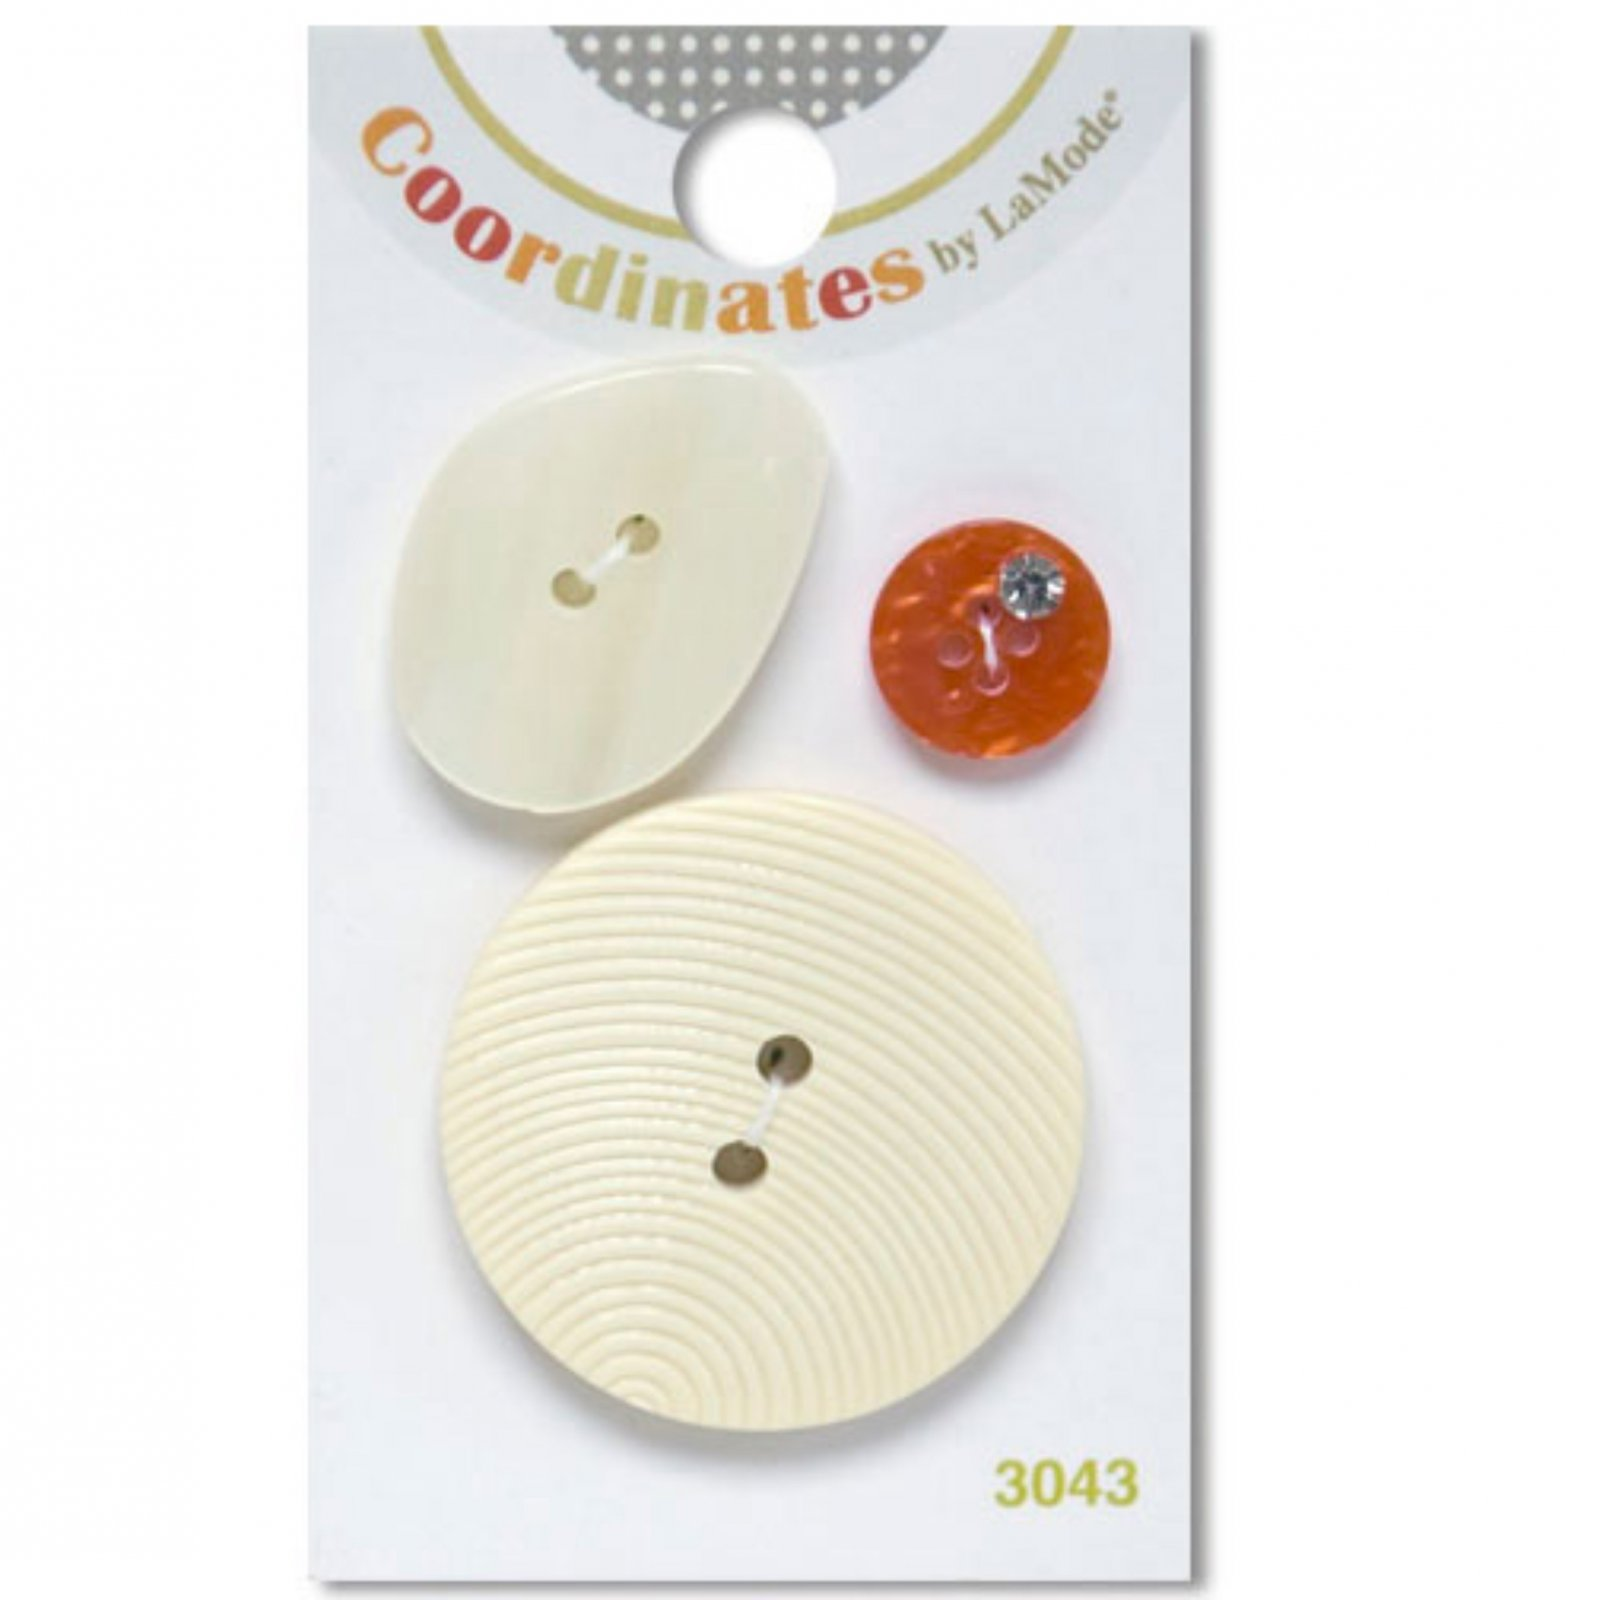 Coordinates by LaMode - Ivory and Orange Buttons